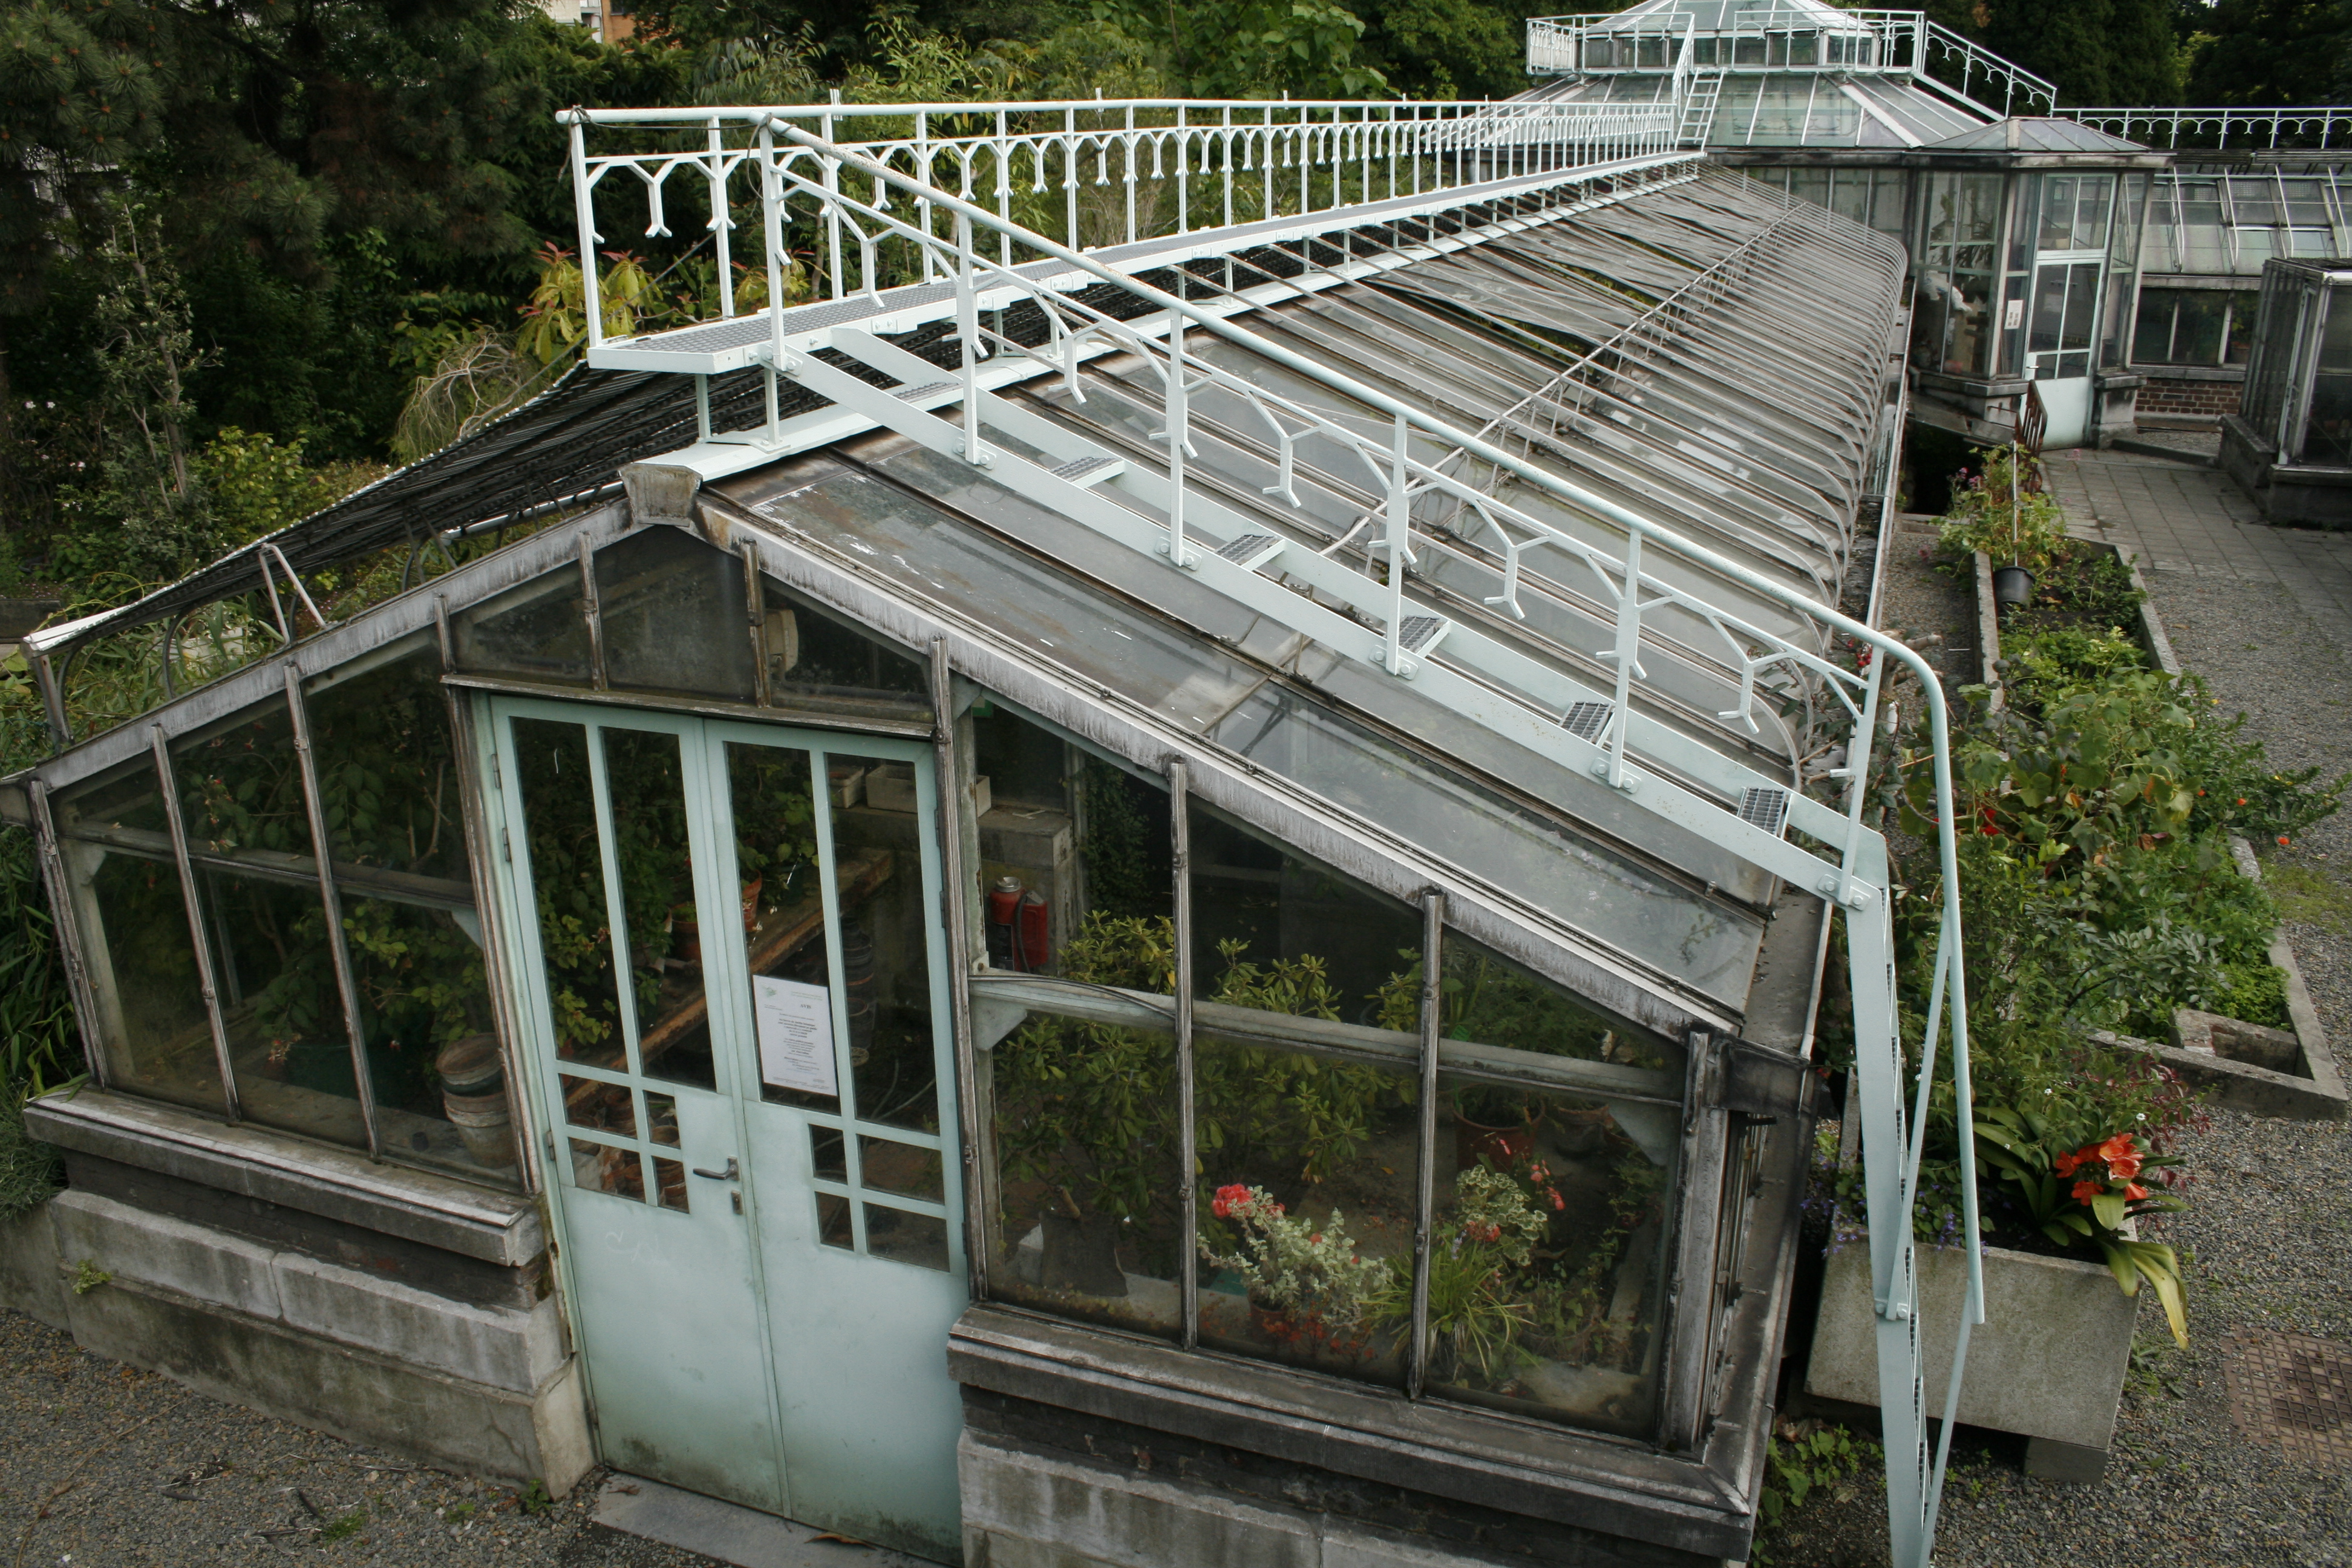 File:Old greenhouse Liege 1.jpg - Wikimedia Commons